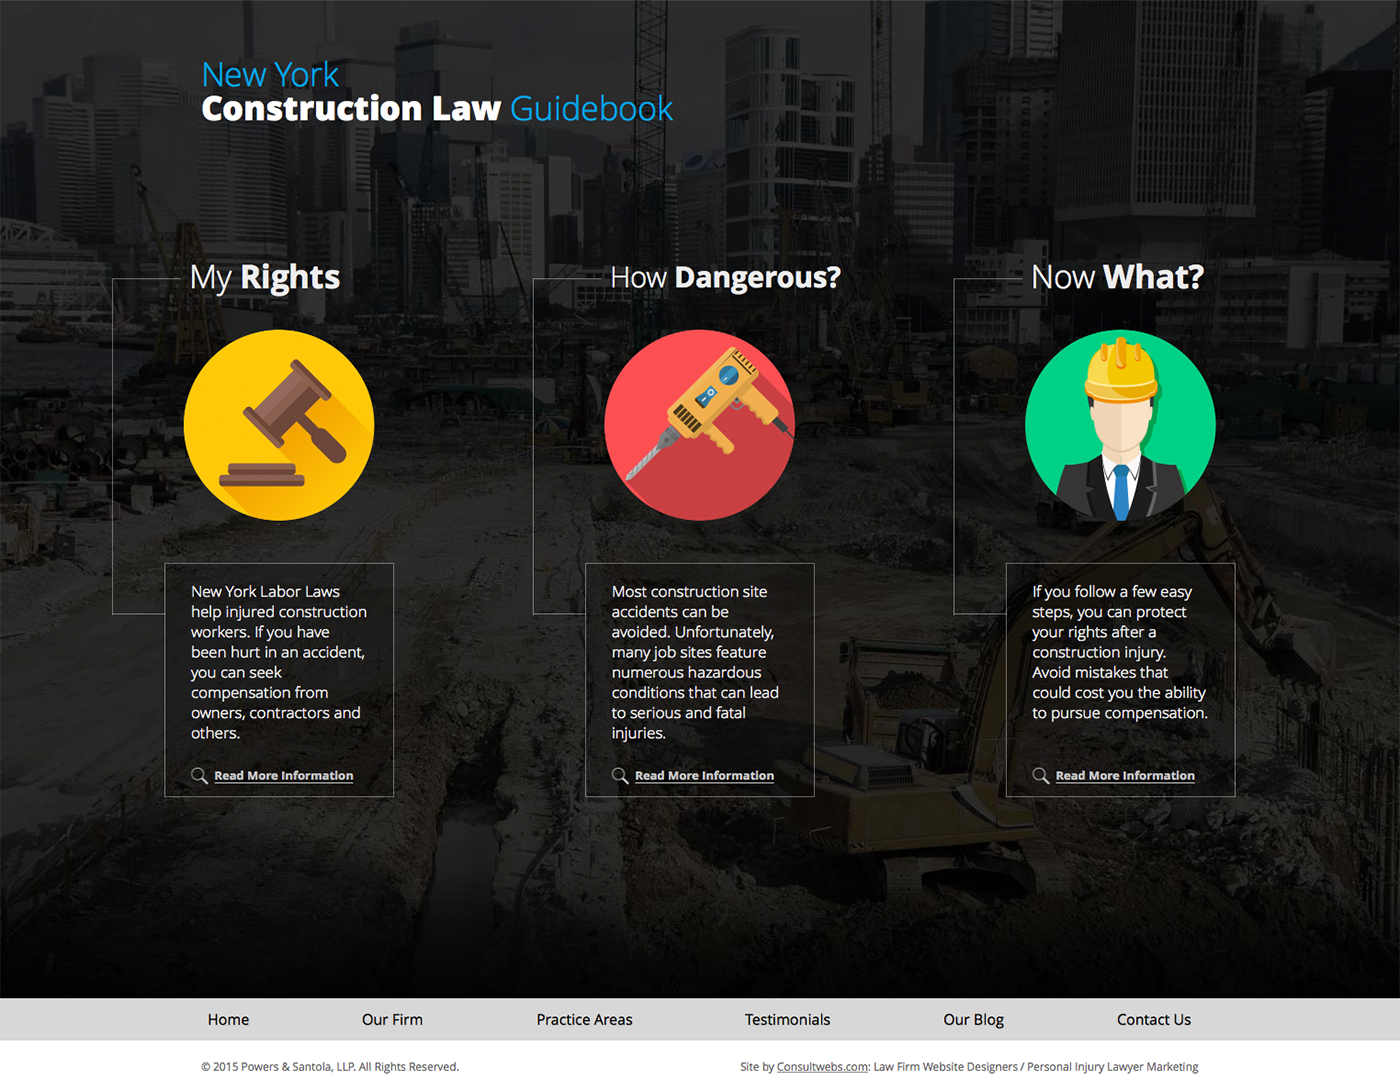 New York Construction Law Guidebook